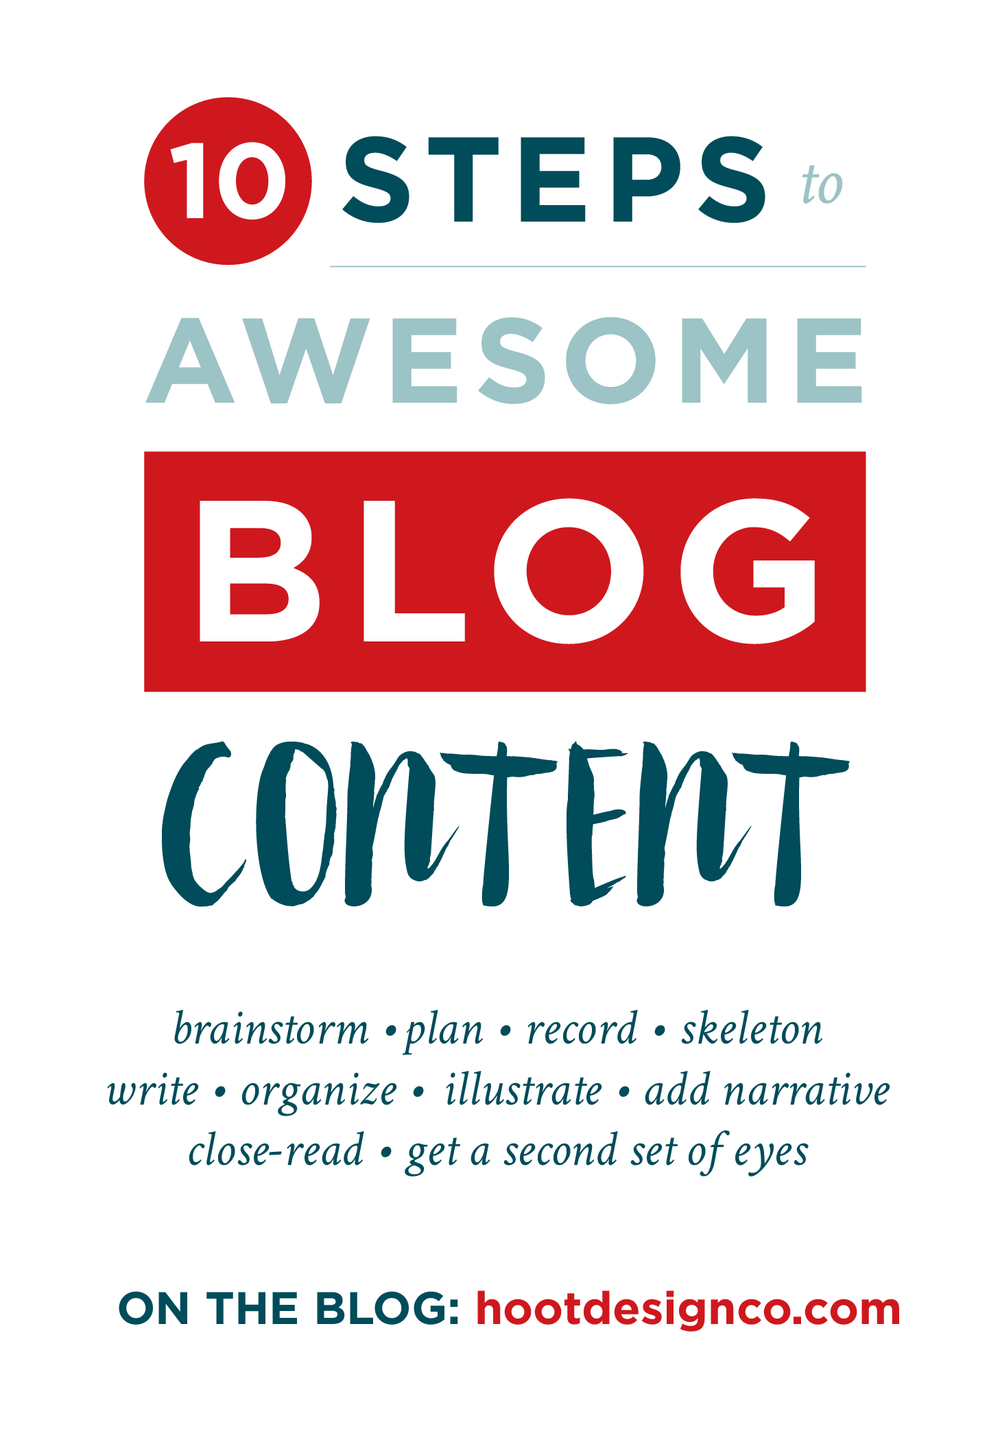 10 steps to awesome blog content! Bloggers, creative business owners, entrepreneurs: NOW is the time to start blogging. We've got 10 steps to creating an awesome blog post for you! | Hoot Design Co.